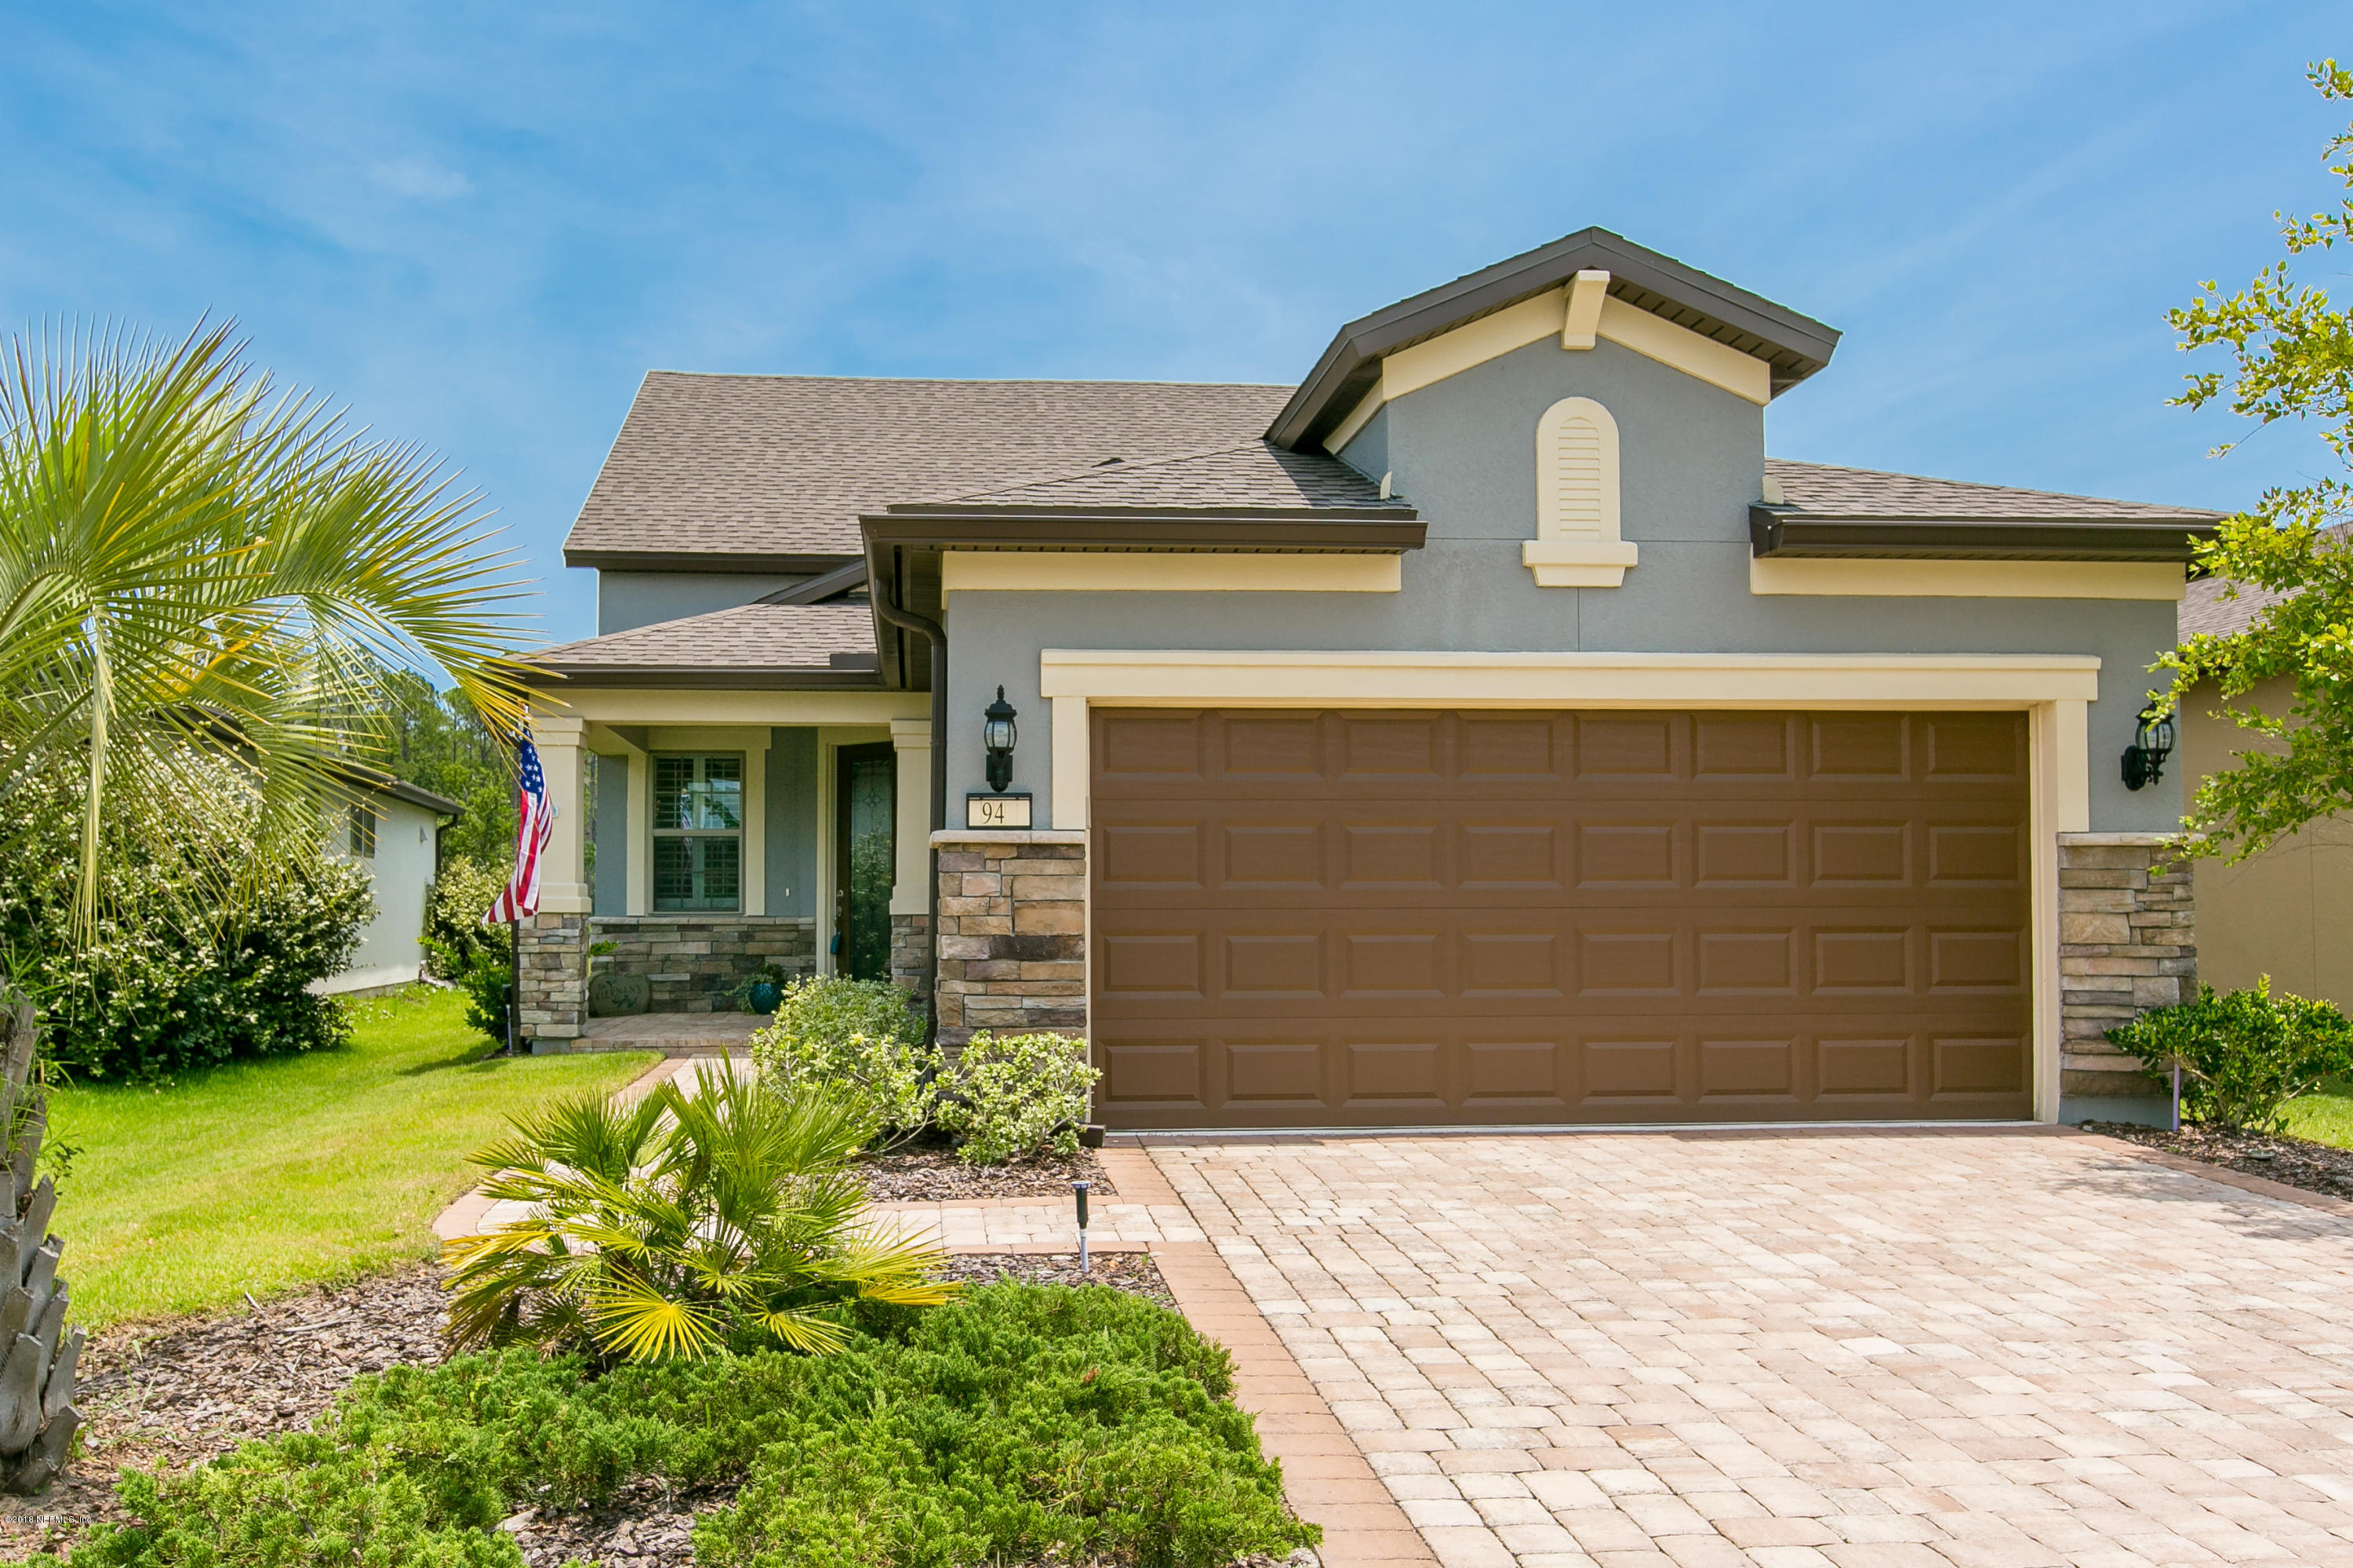 94 WOOD MEADOW WAY PONTE VEDRA - 1